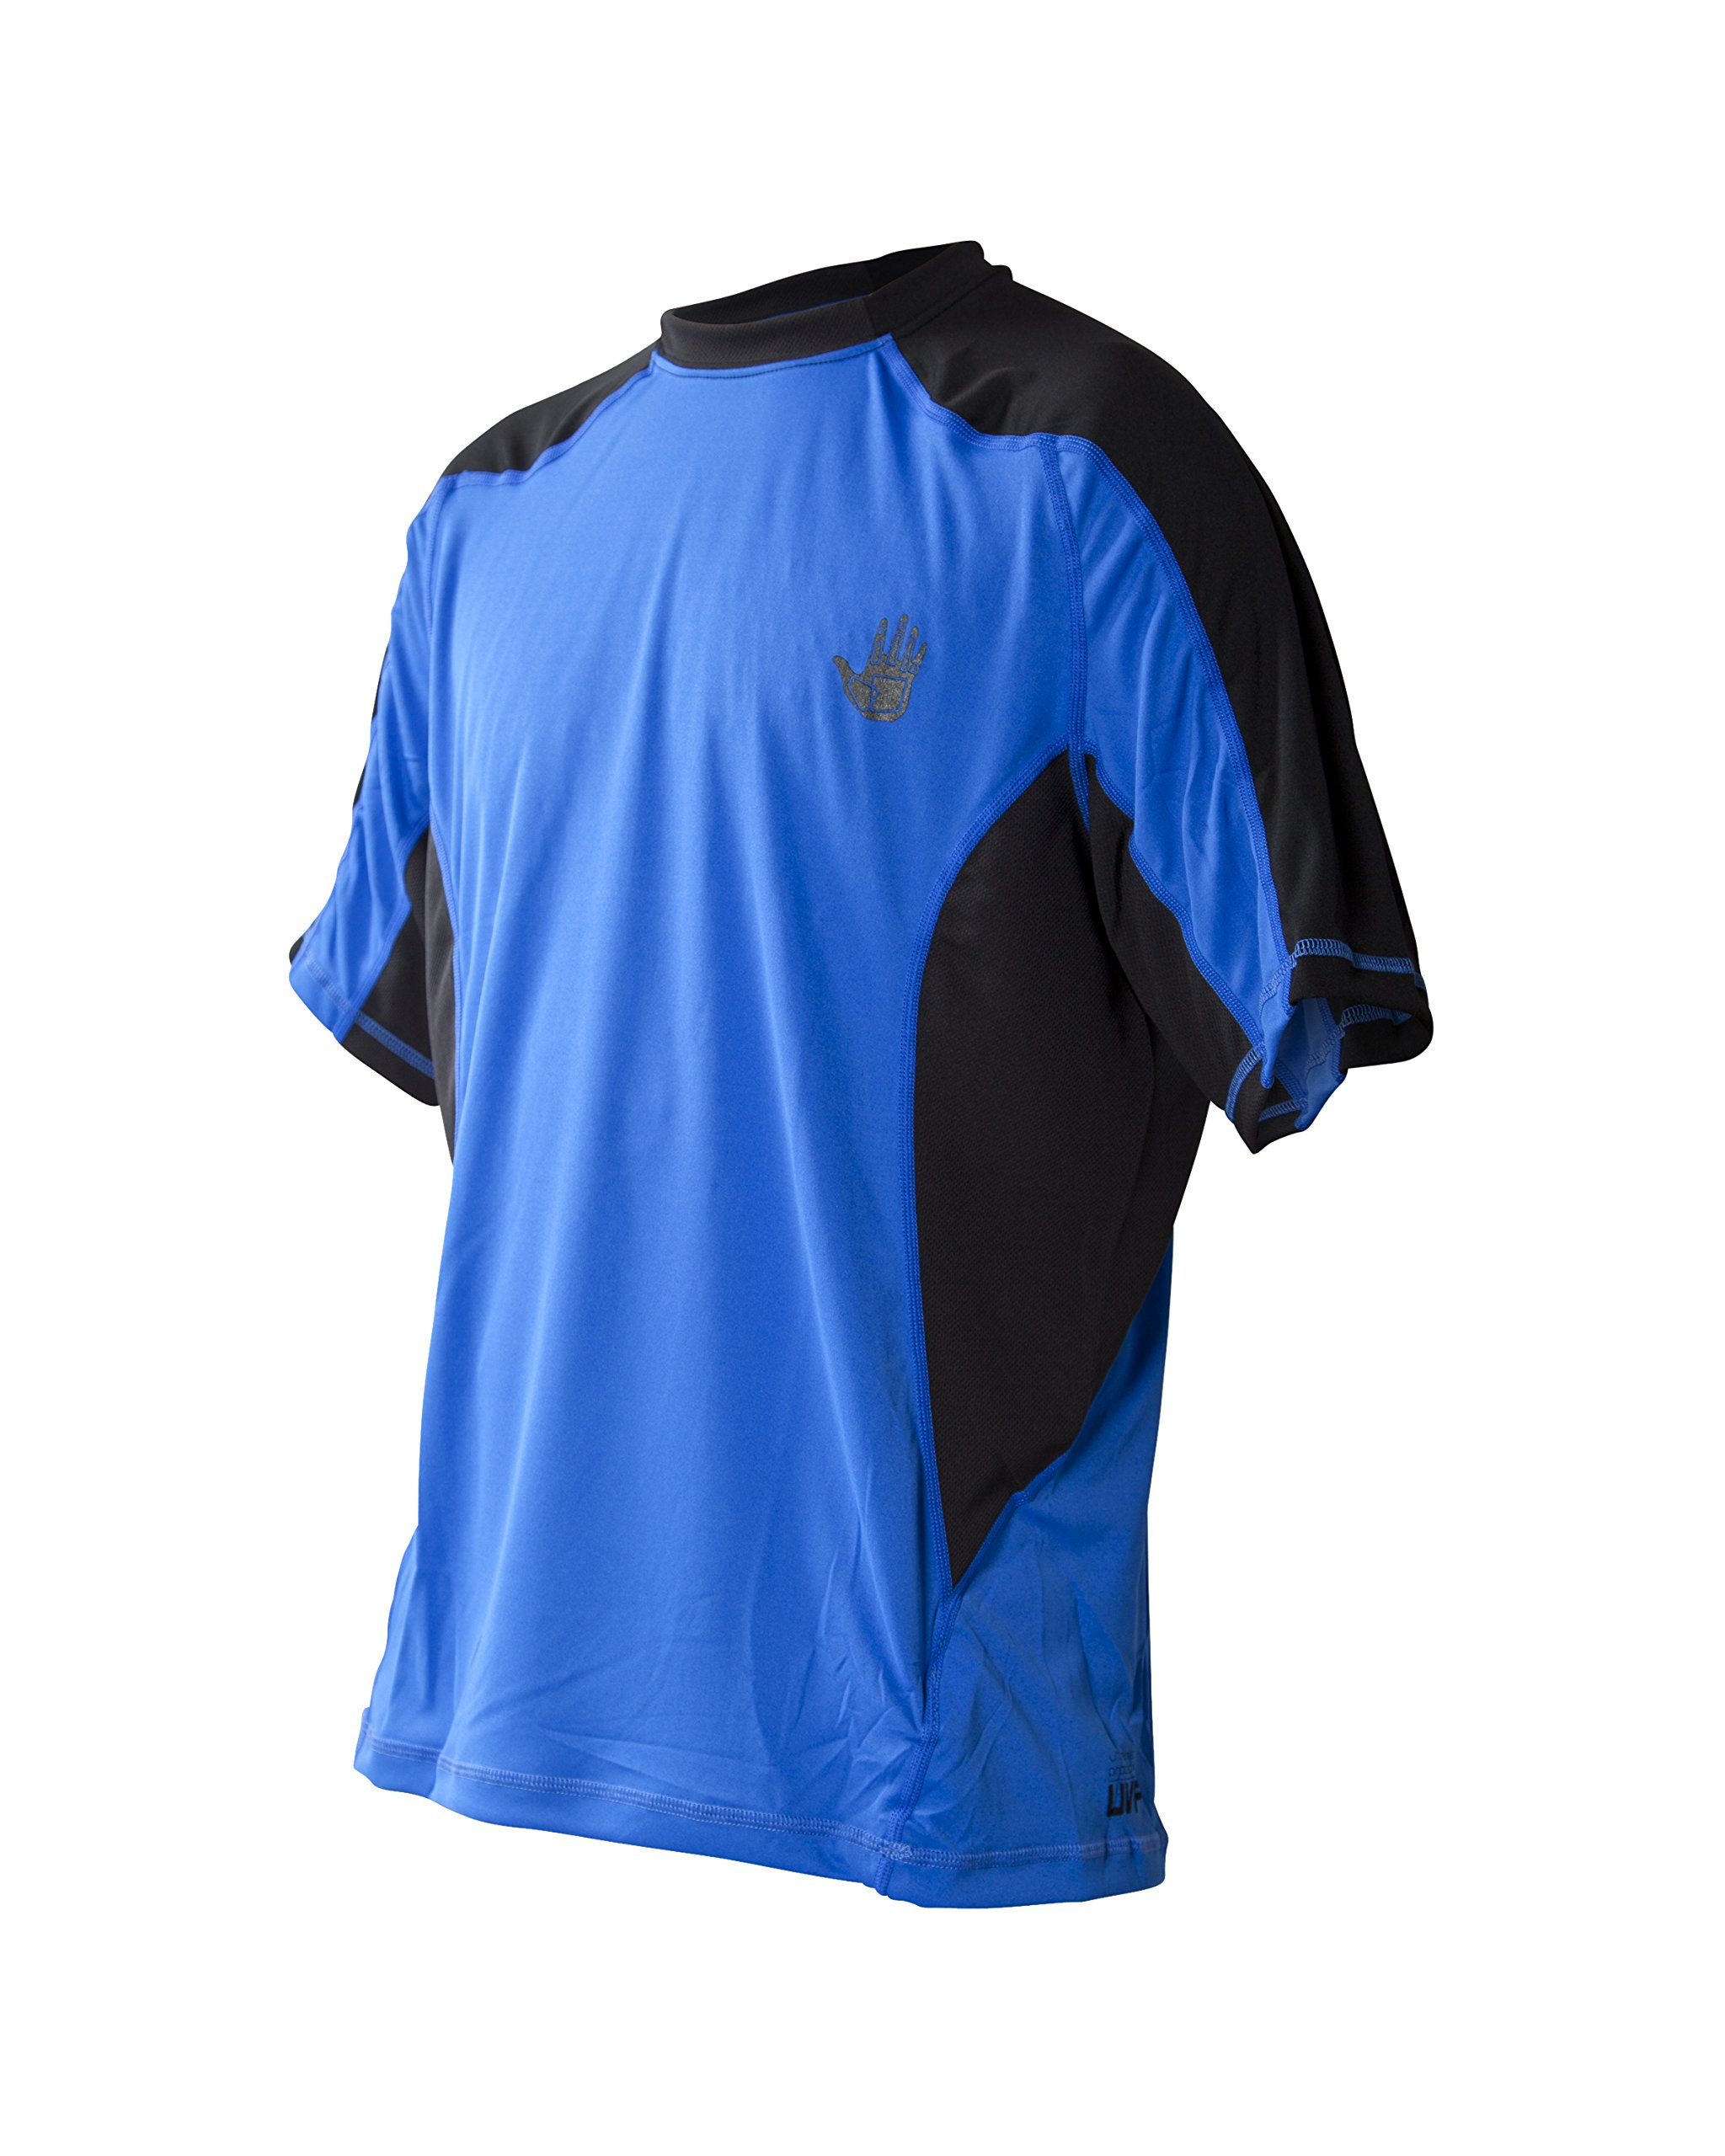 Body Glove Wetsuit Men's Performance Loose Fit Short Arm Shirt, Royal, X-Large